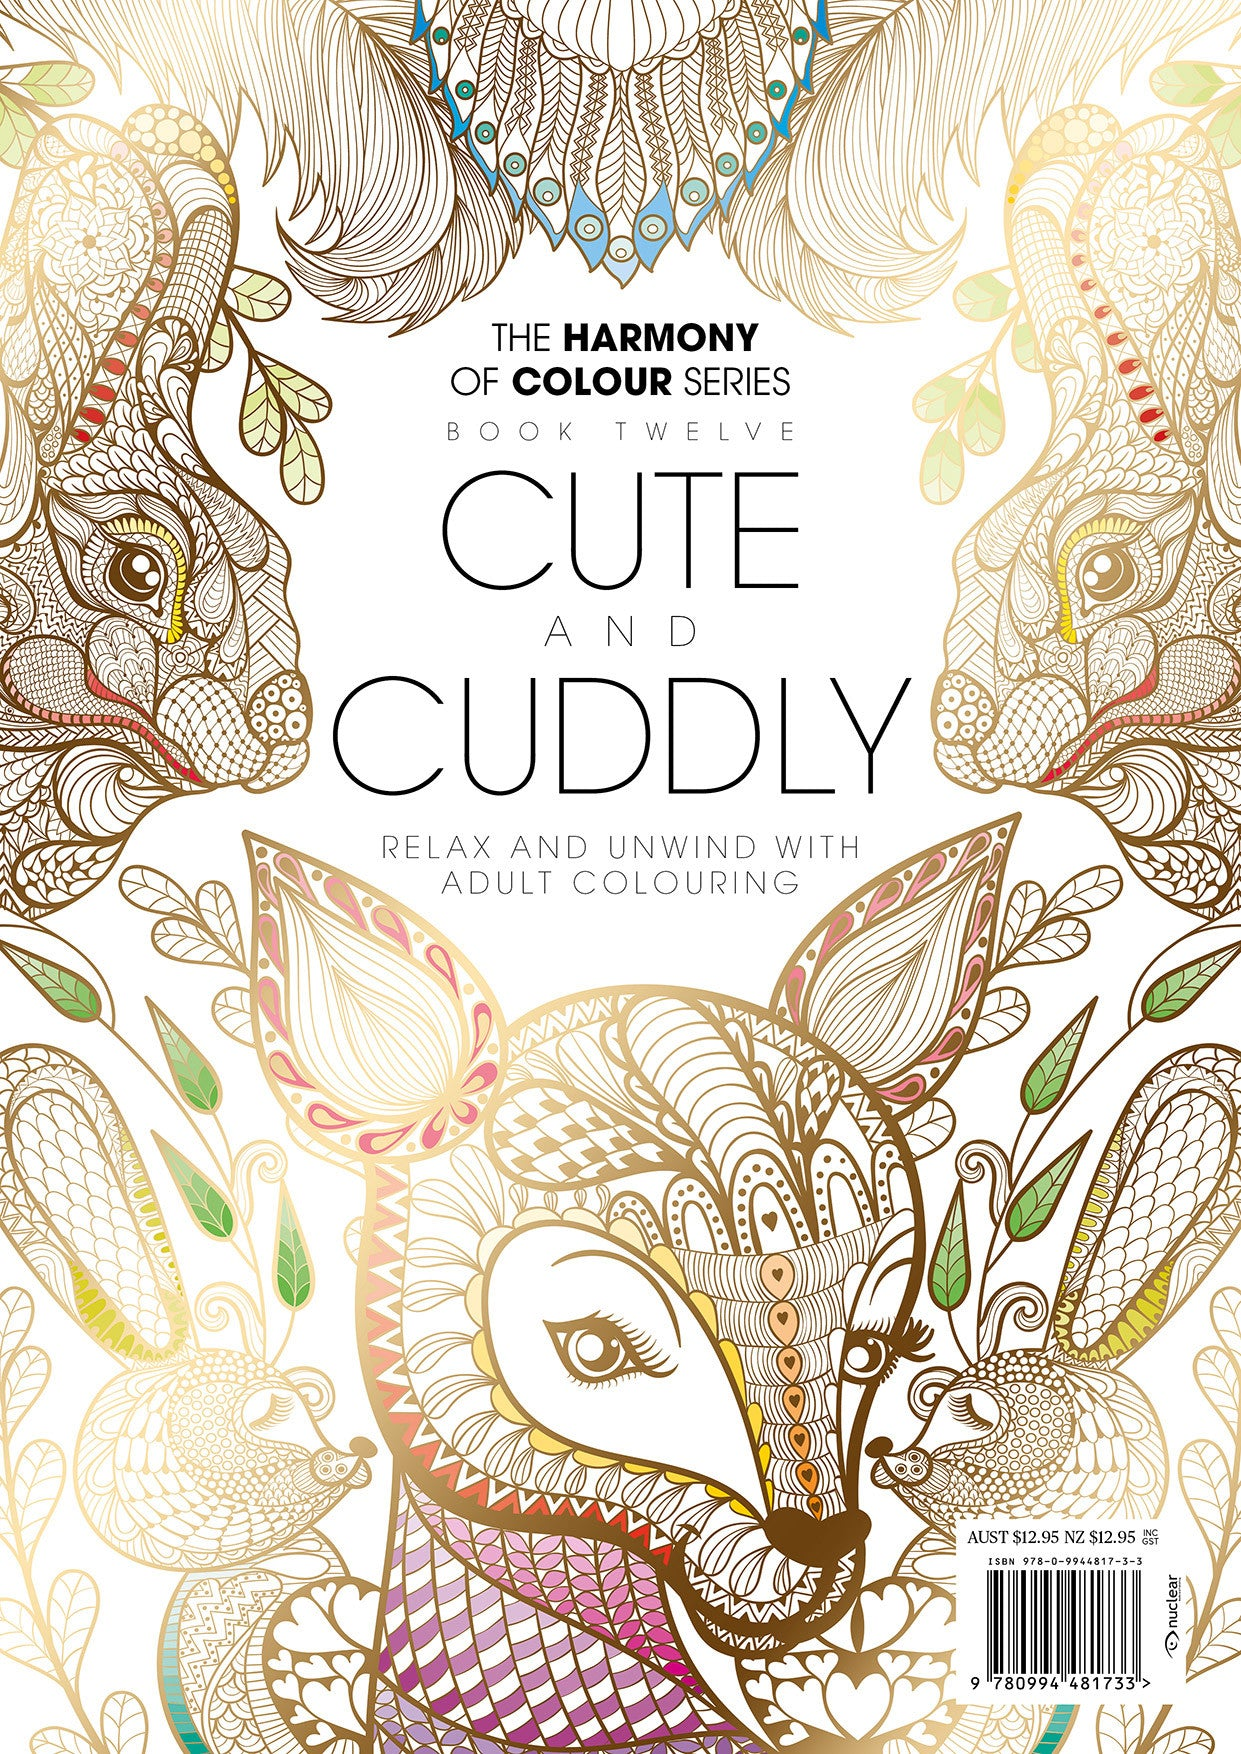 12. Harmony of Colour Book Twelve: Cute and Cuddly (PRINT EDITION ...